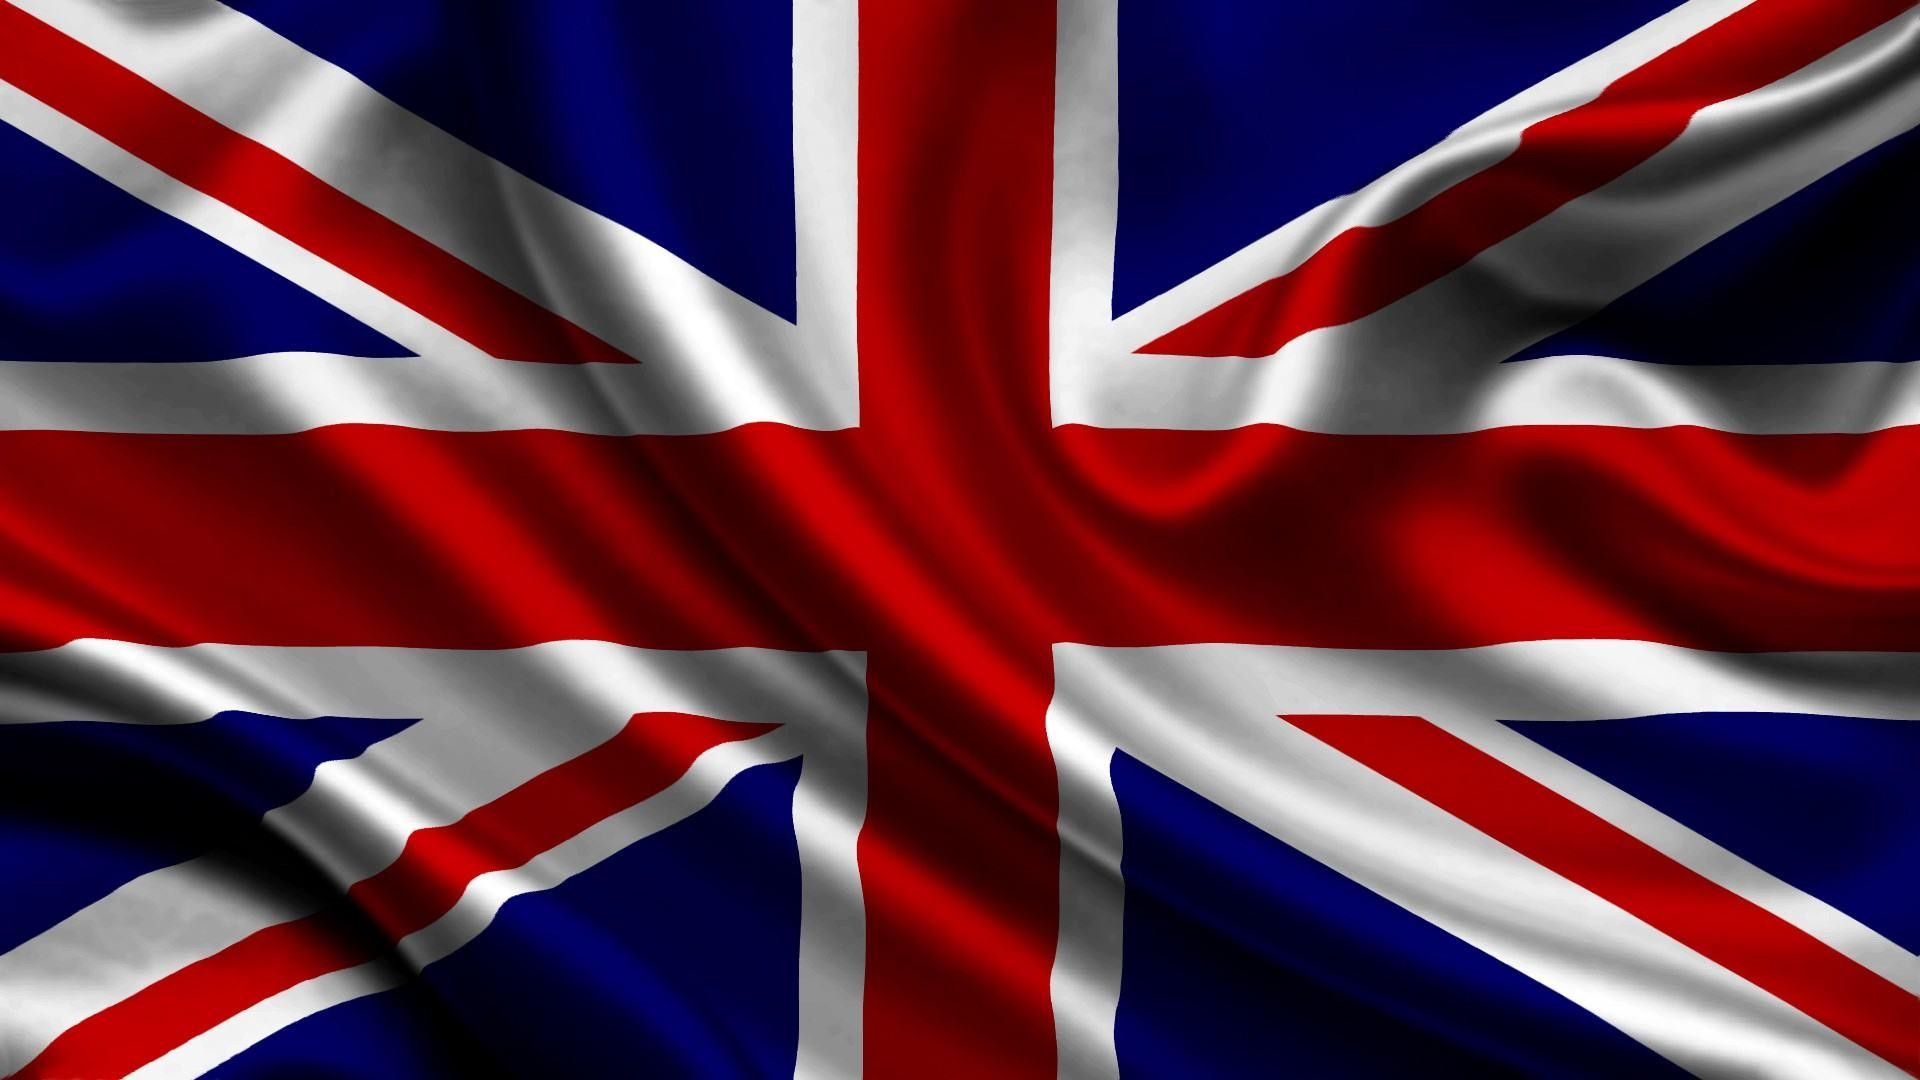 Flag Wallpapers Backgrounds – Download free Flag British Flag wal